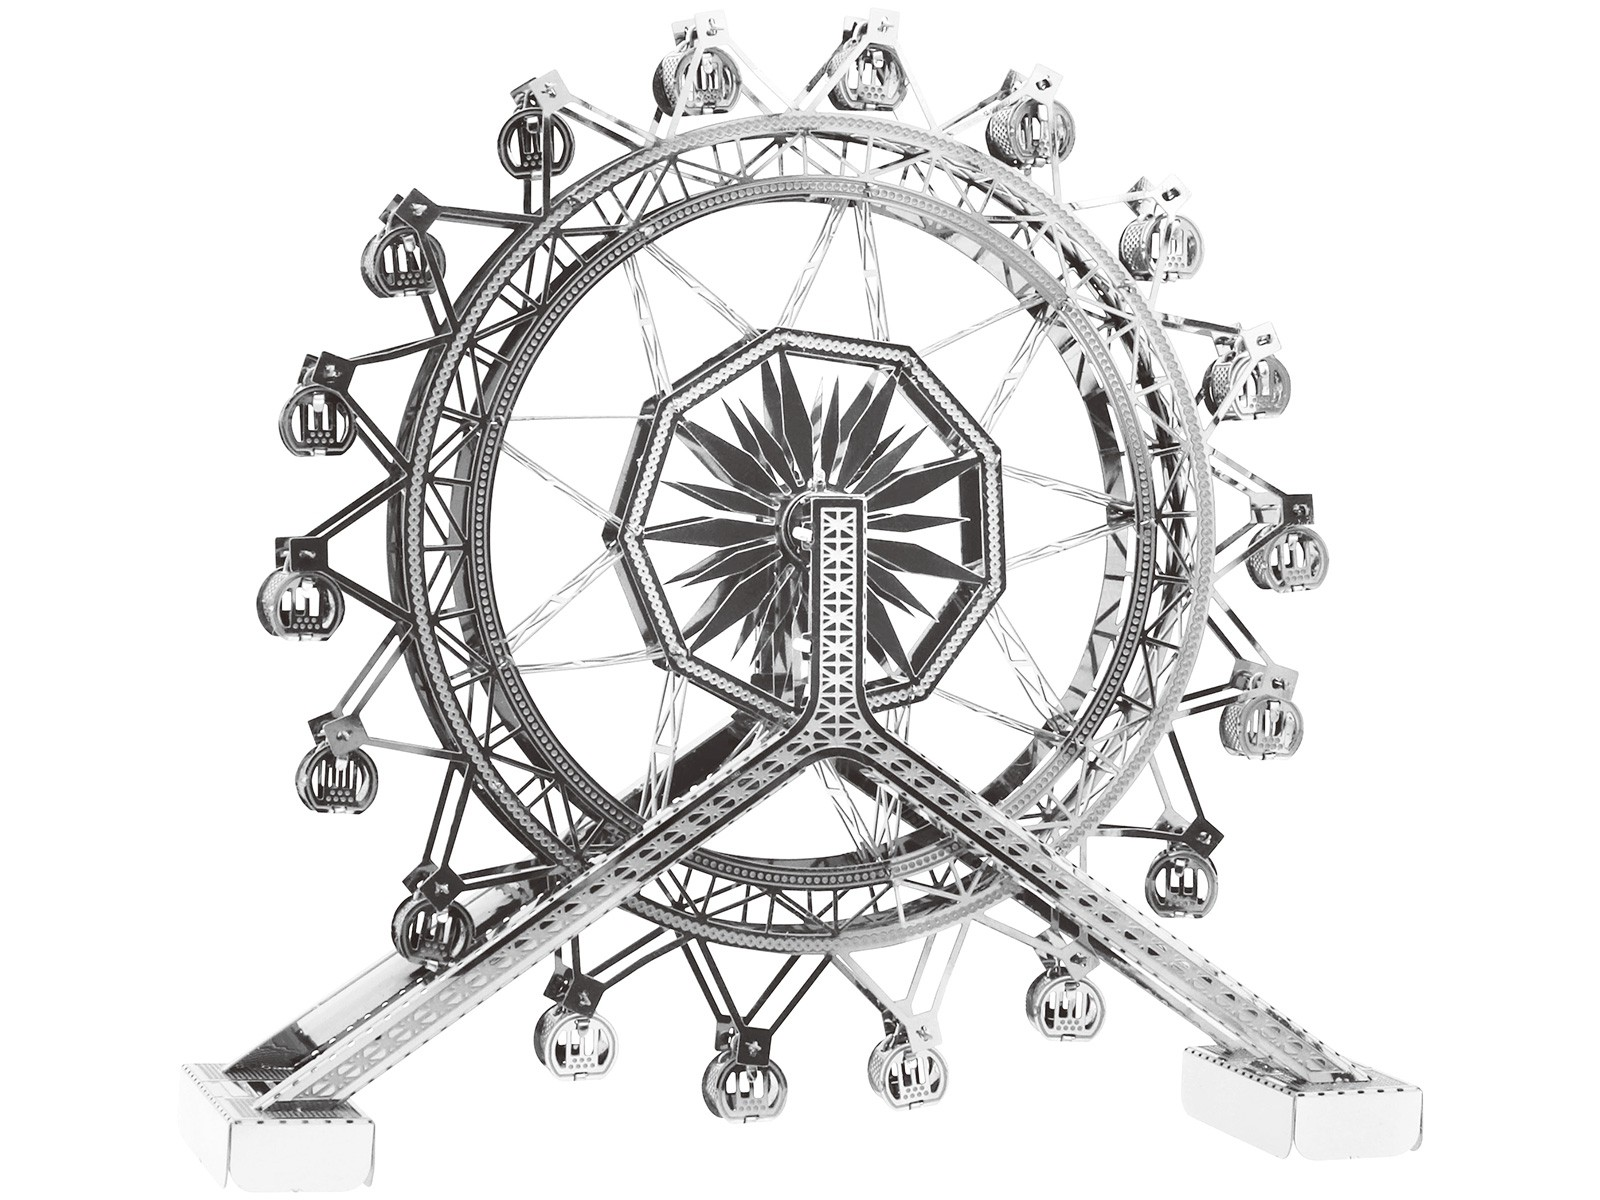 Mini 3D Metal Model Ferrris Wheel